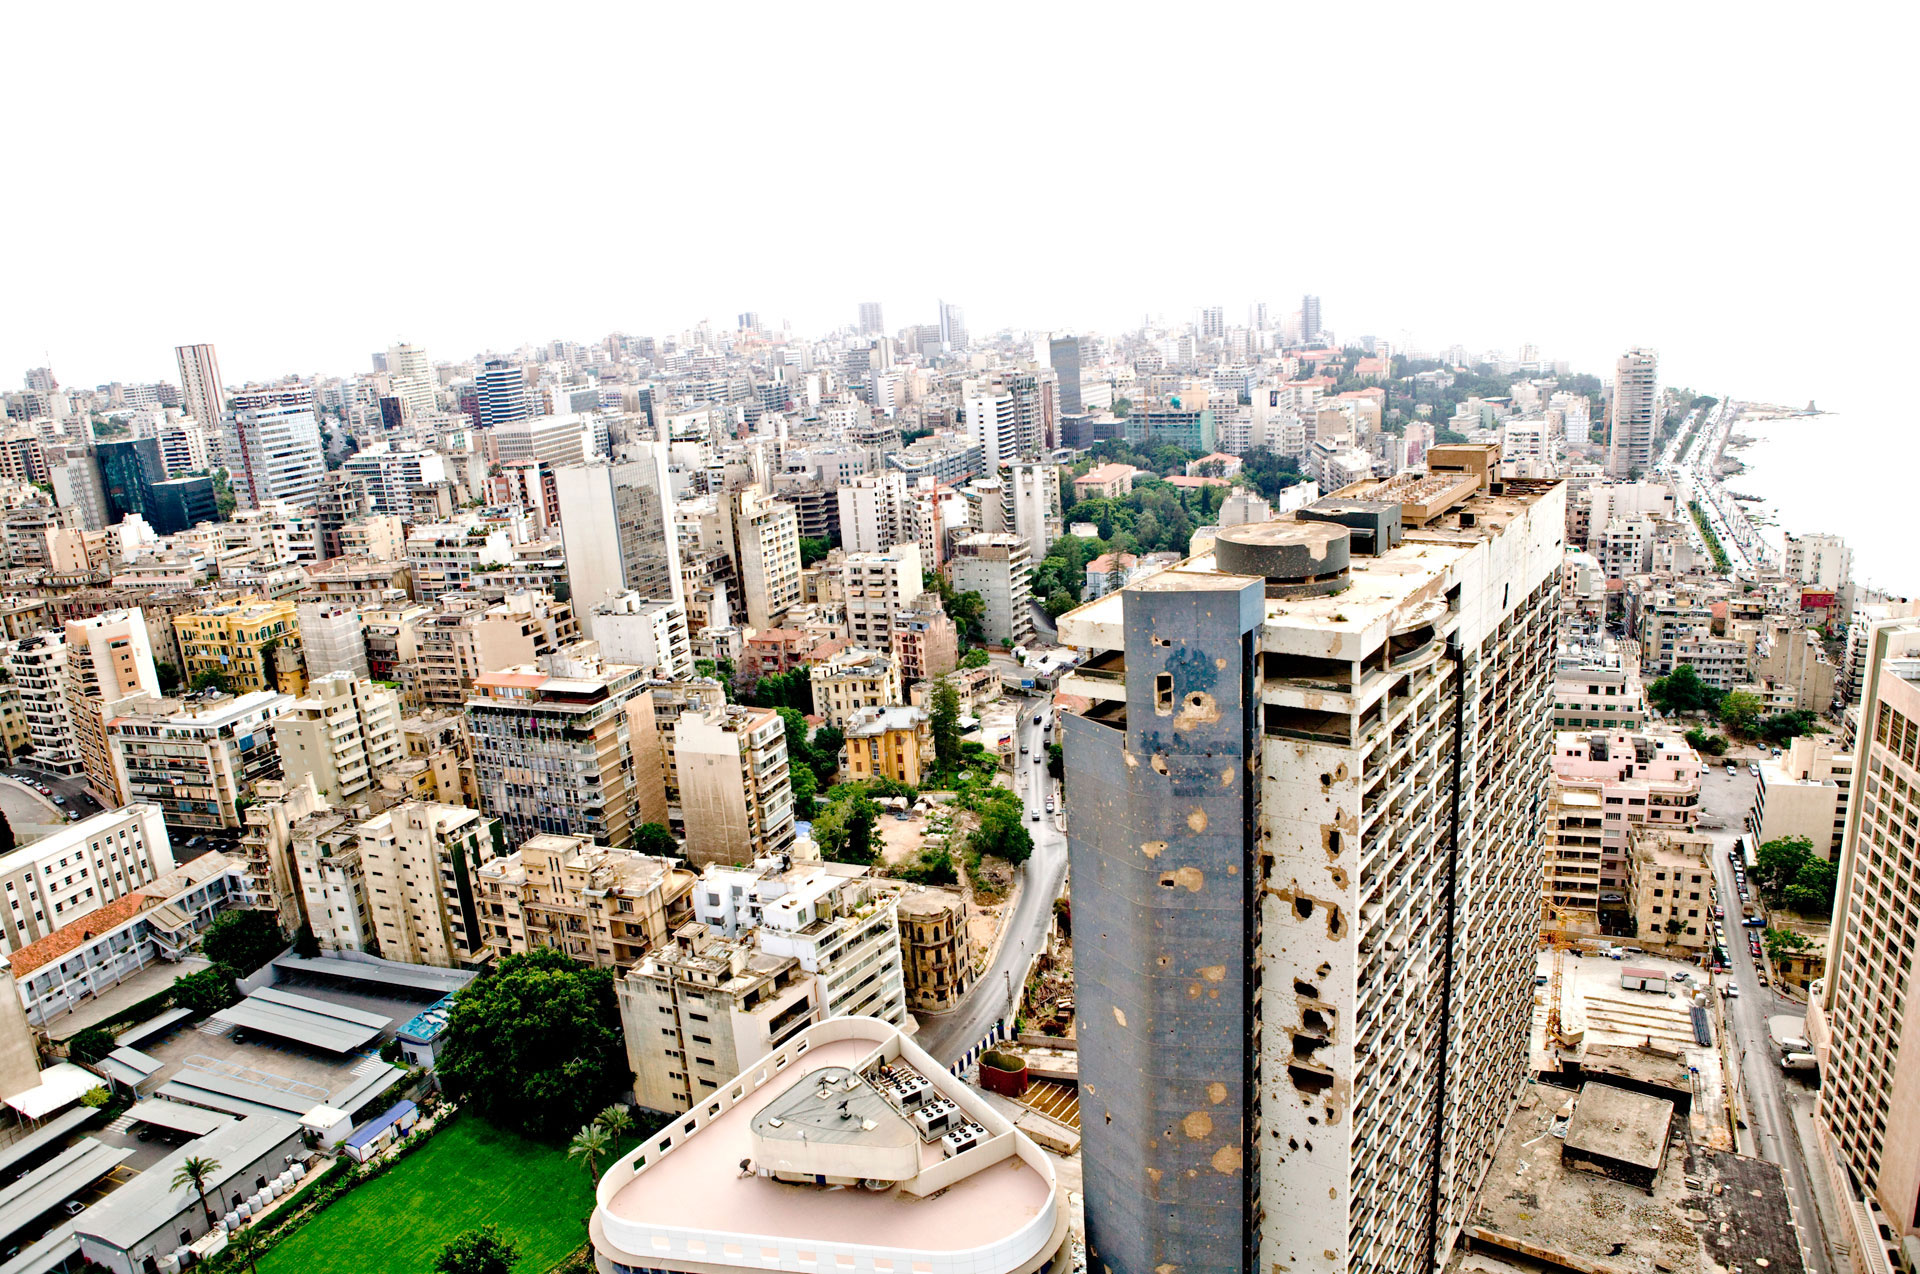 Holiday Inn, Beirut ©Jason Florio - aerial colour image of the bombed out hotel, cityscape